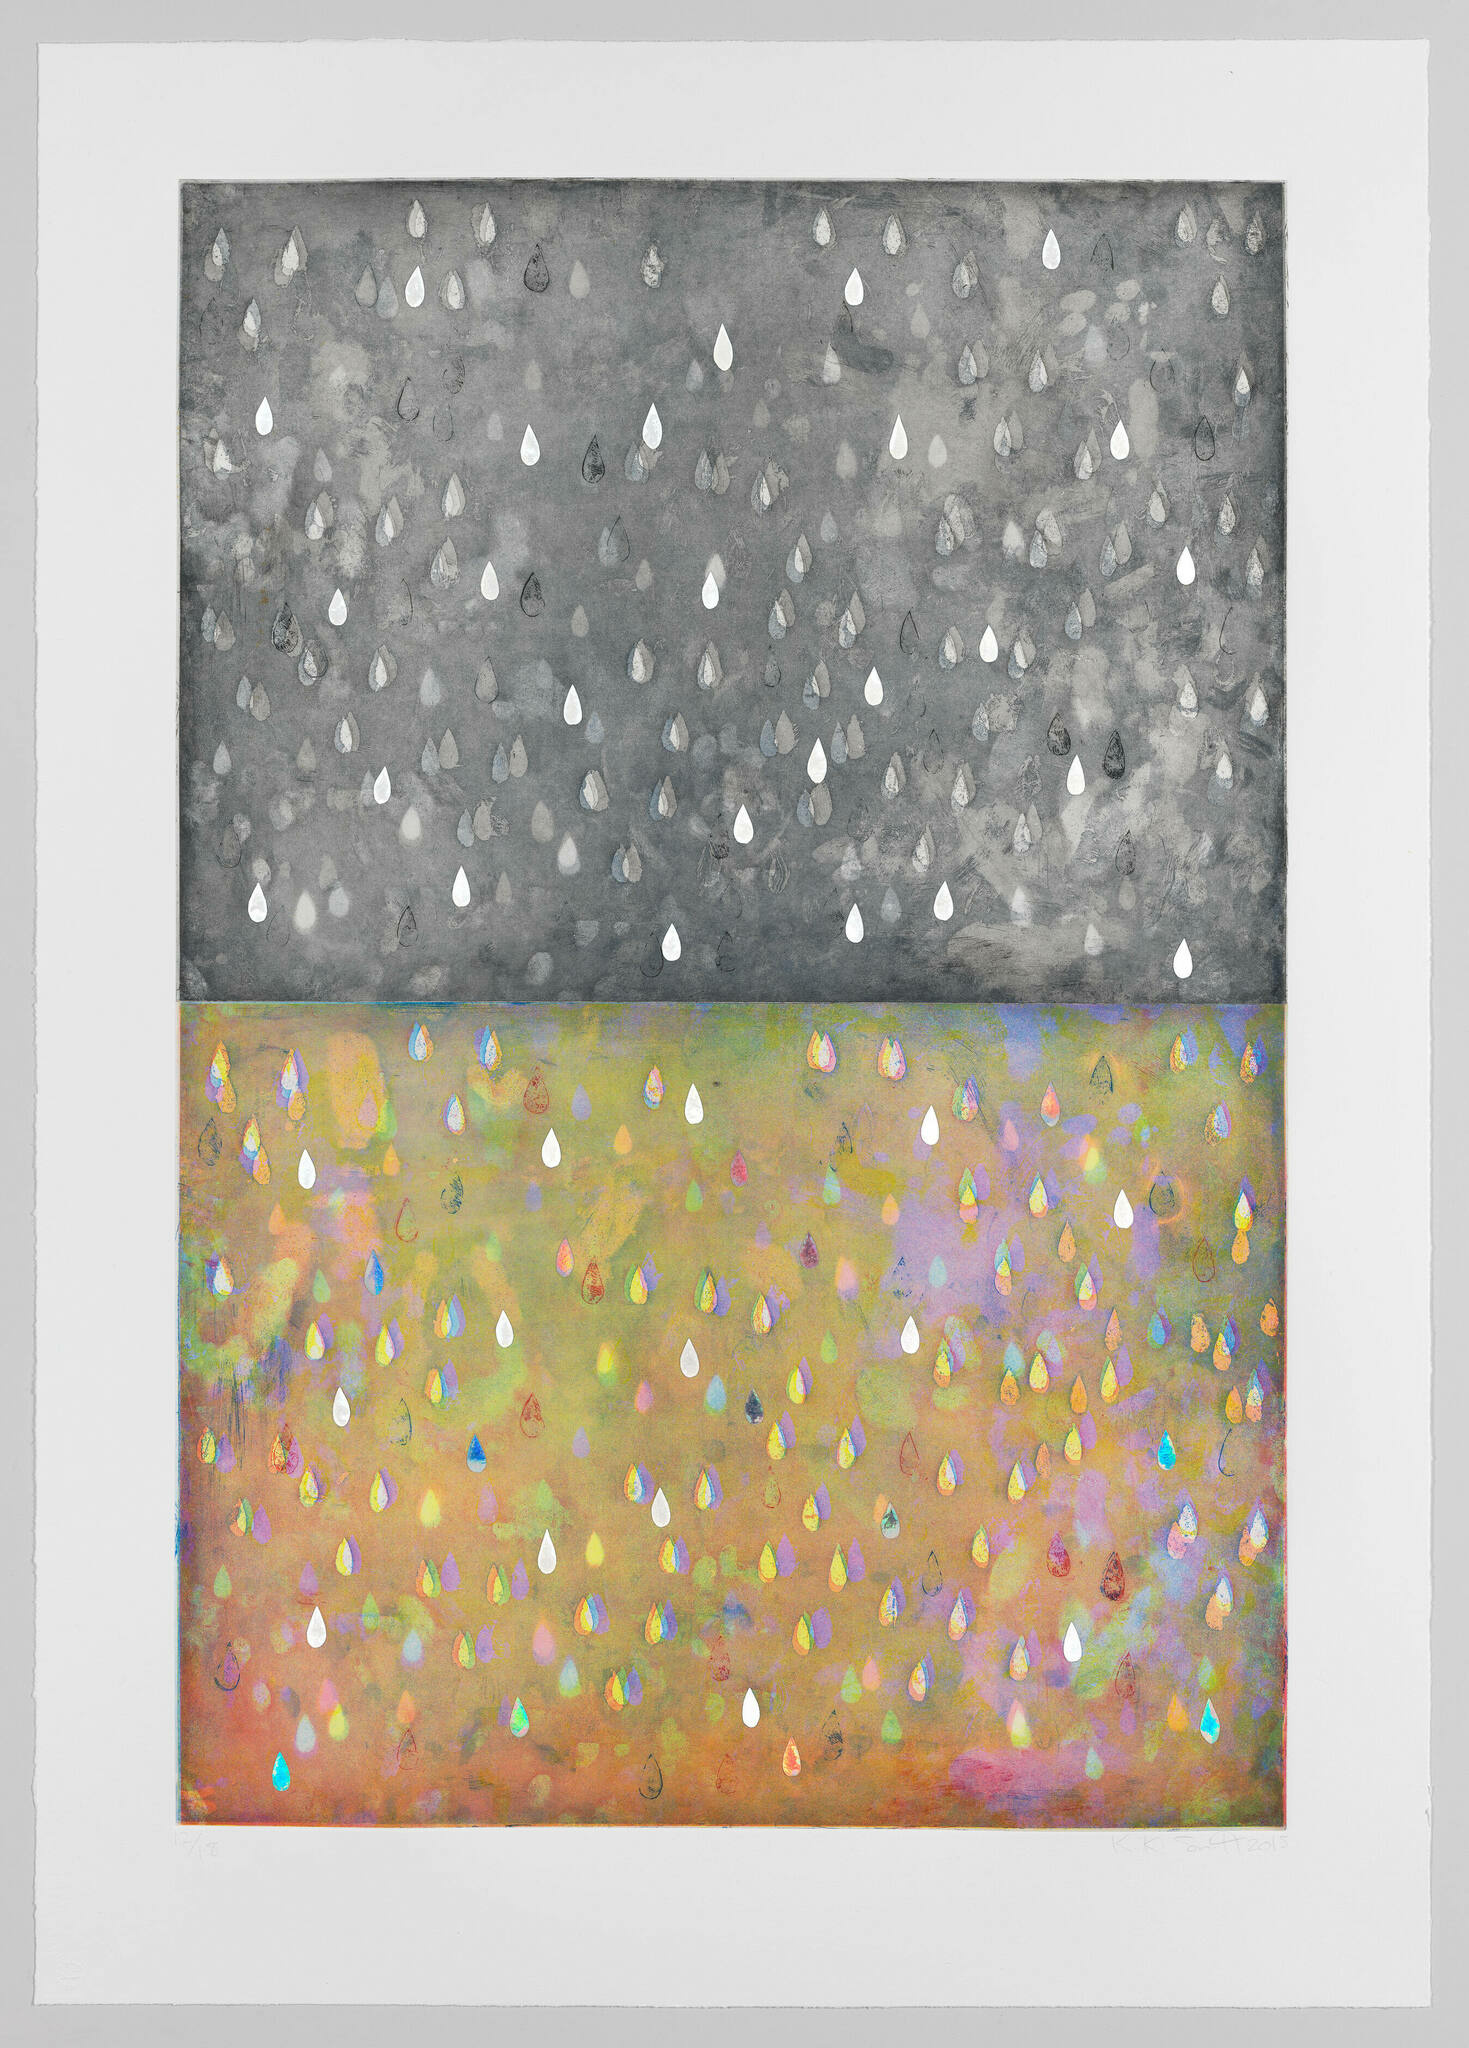 A diptych portraying rain, one in black and white, the other multicolored.